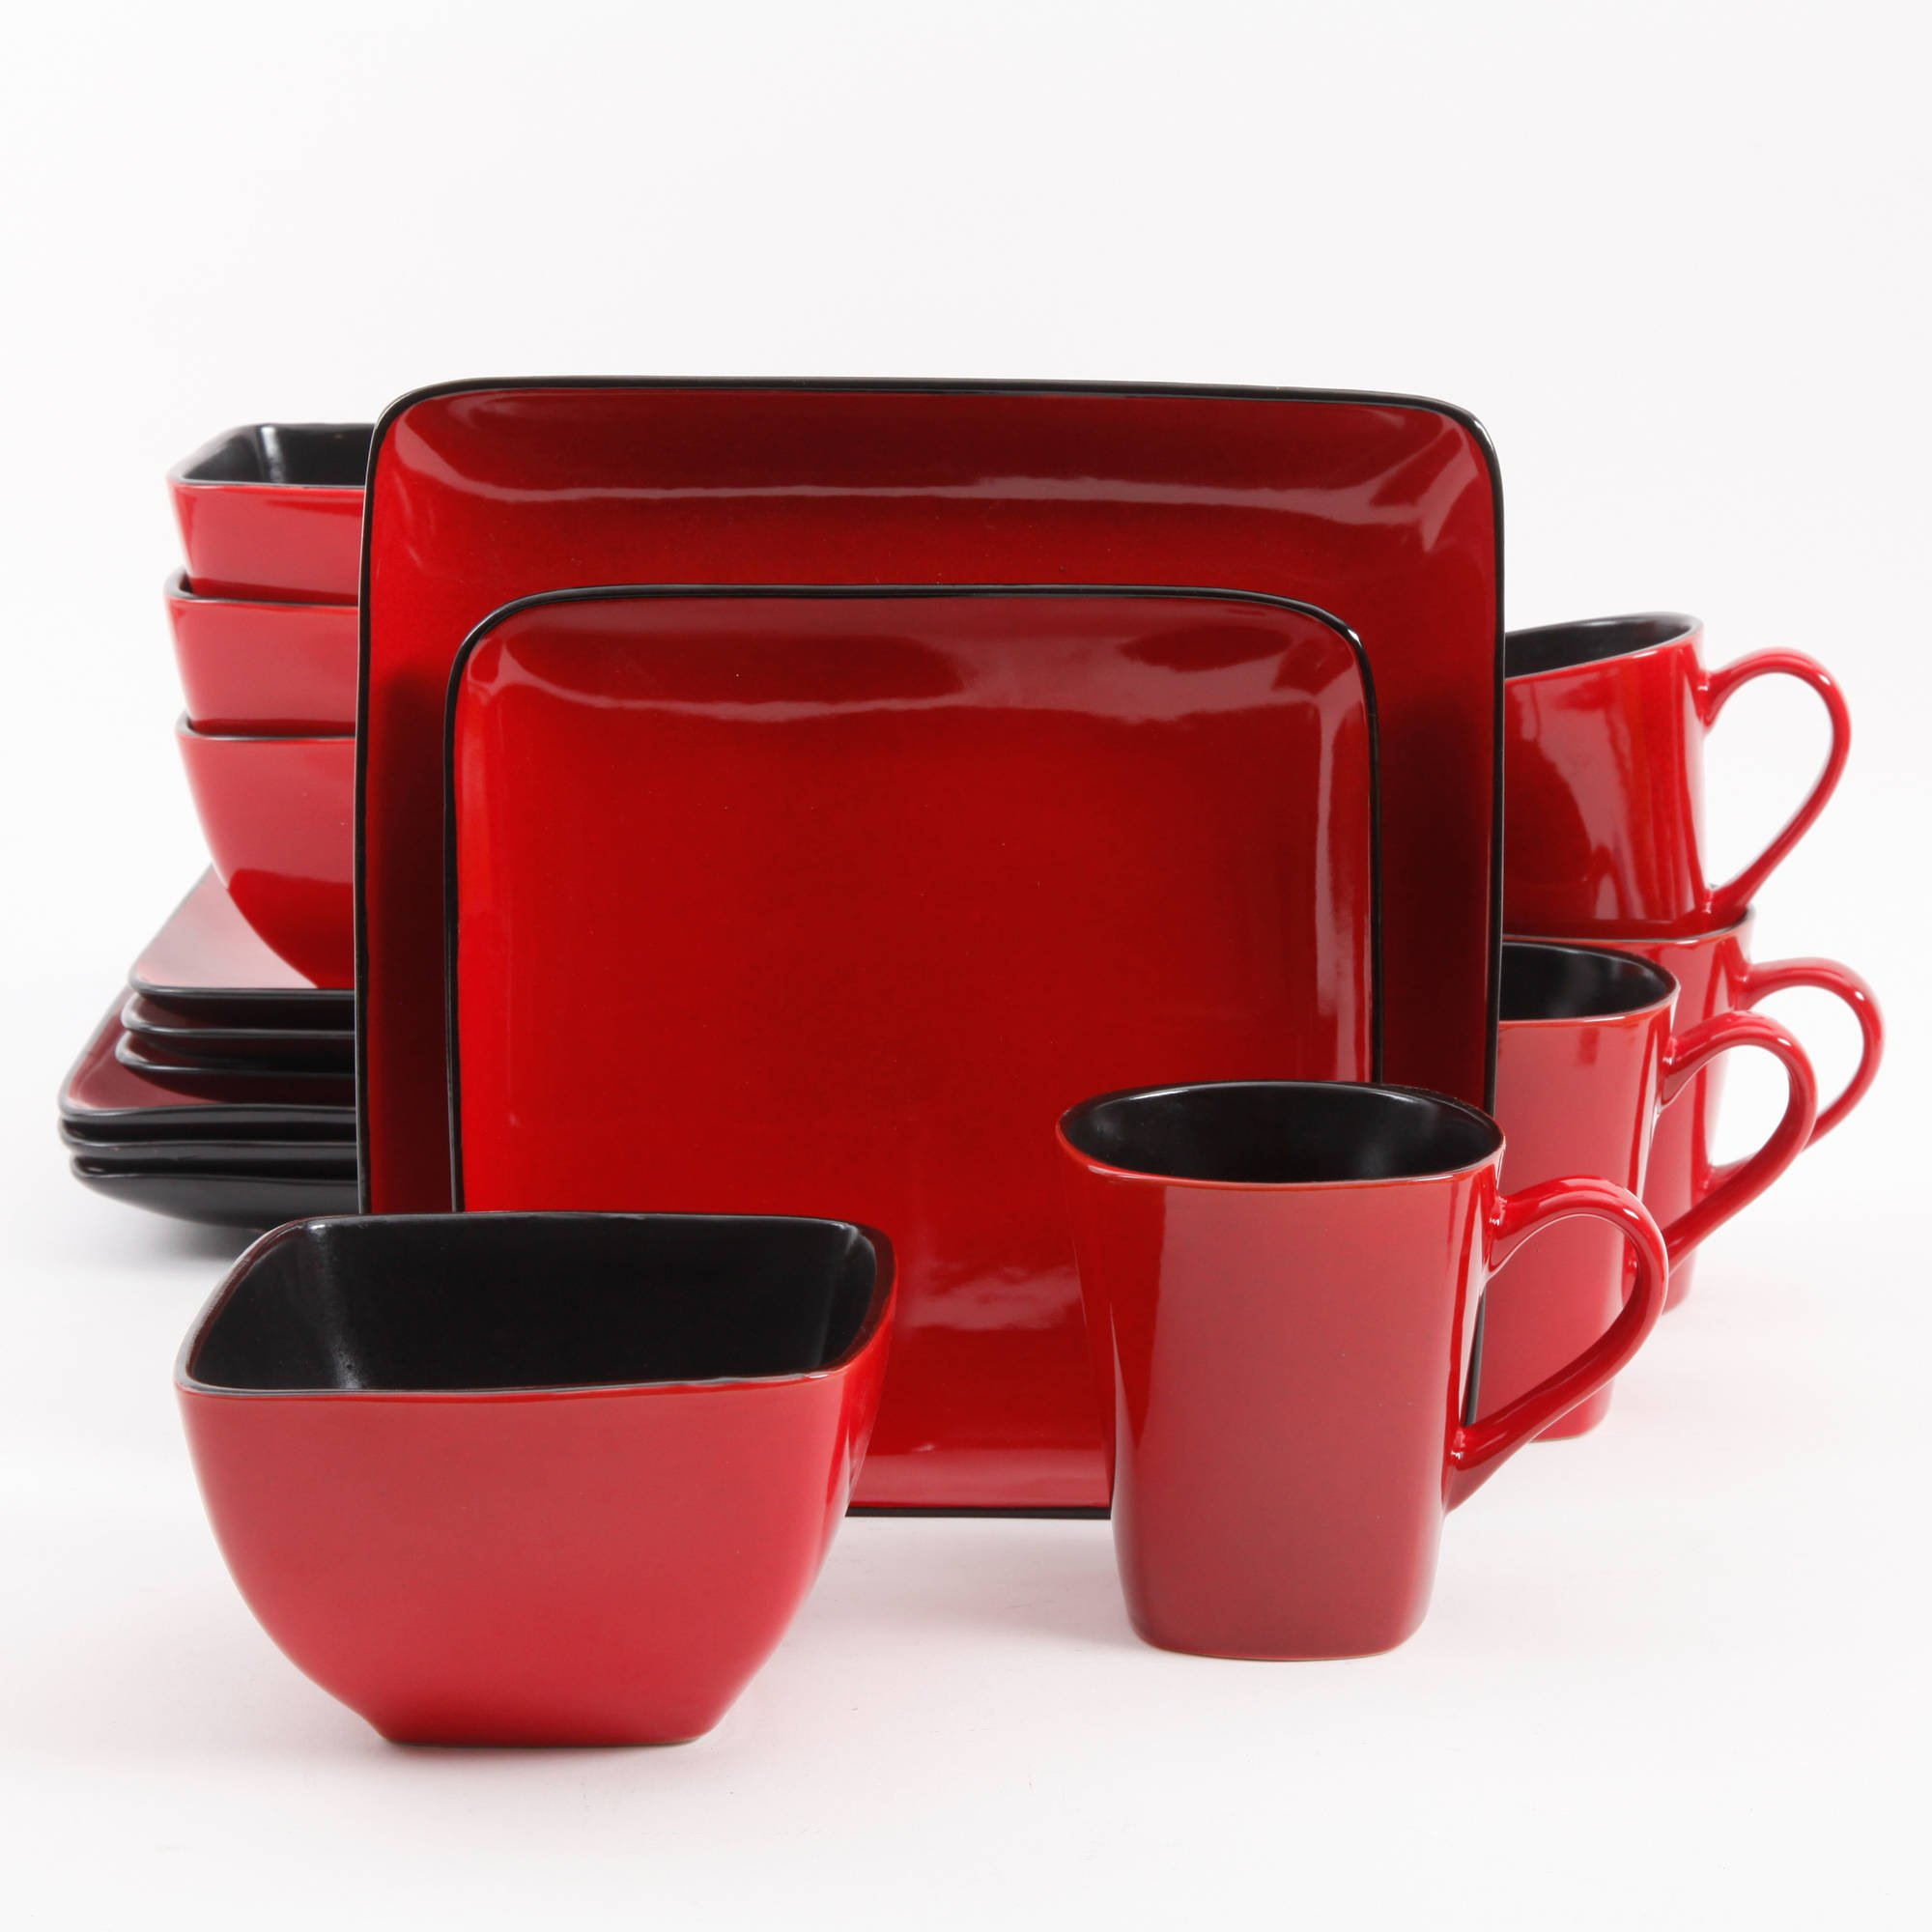 Better Homes and Gardens 32-Piece Square Dinnerware Set, Red